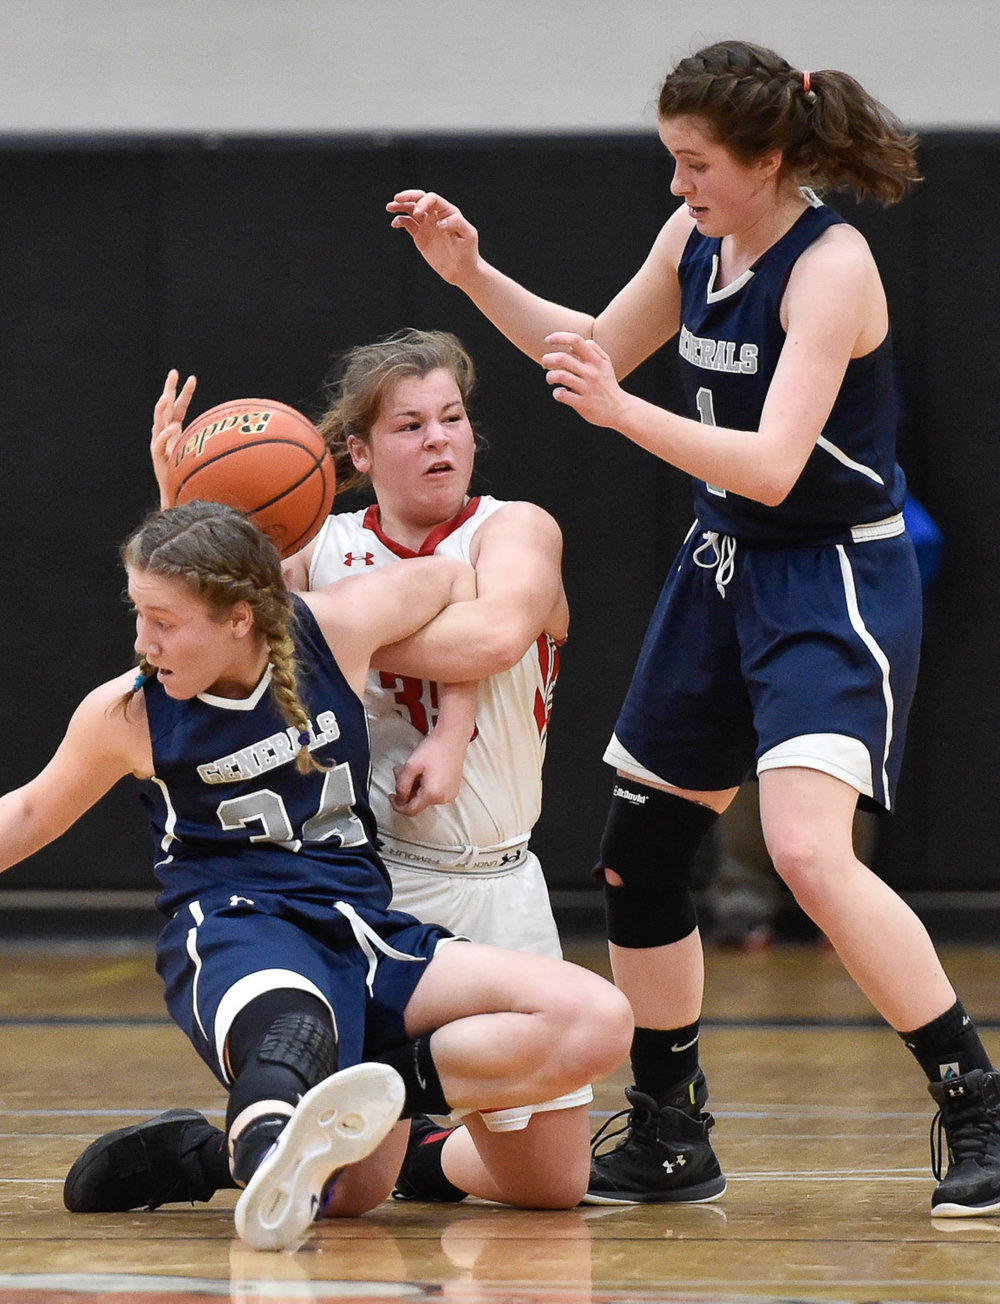 Nikon D4s, 1/1,000 @ f/2.8, ISO 6,400, 70-200mm  Hannah Dziadyk of Wakefield holds onto the ball as she is defended by Elizabeth Kirschner and Lauren Flynn of Hamilton Wenham during Wakefield's D2 North tournament game loss, 54-53, at Woburn High School.